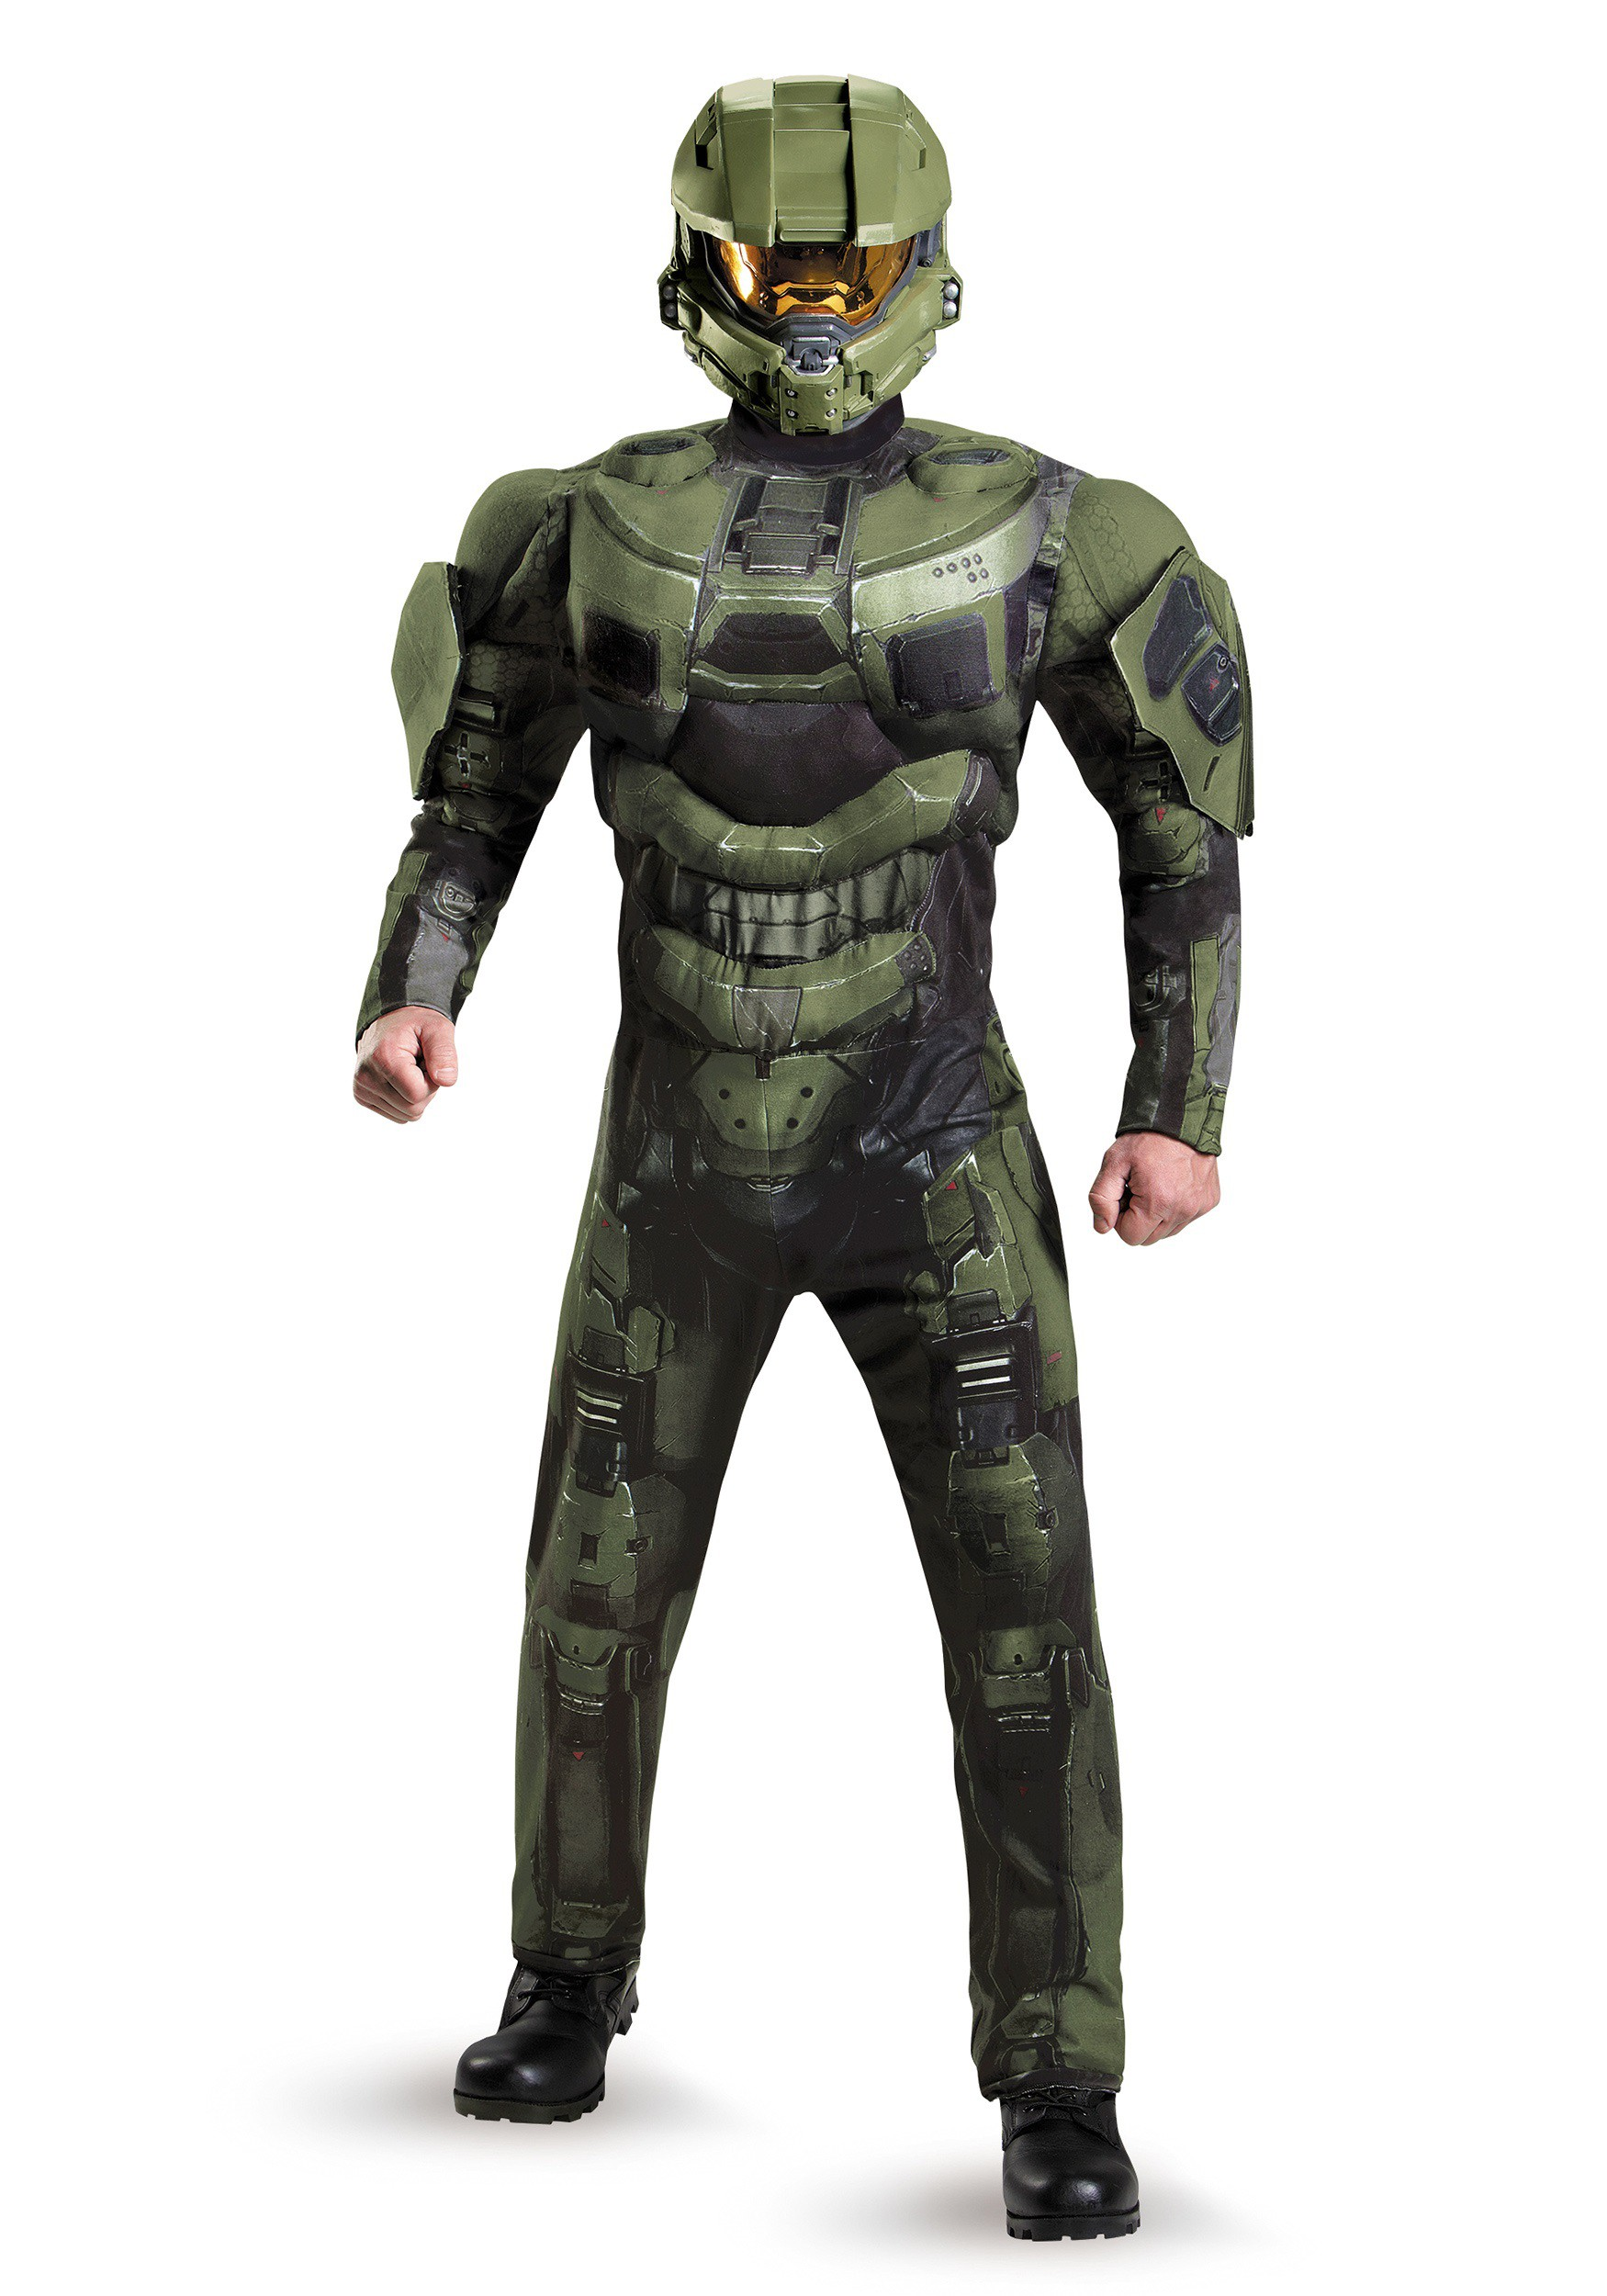 plus size deluxe muscle master chief costume. Black Bedroom Furniture Sets. Home Design Ideas